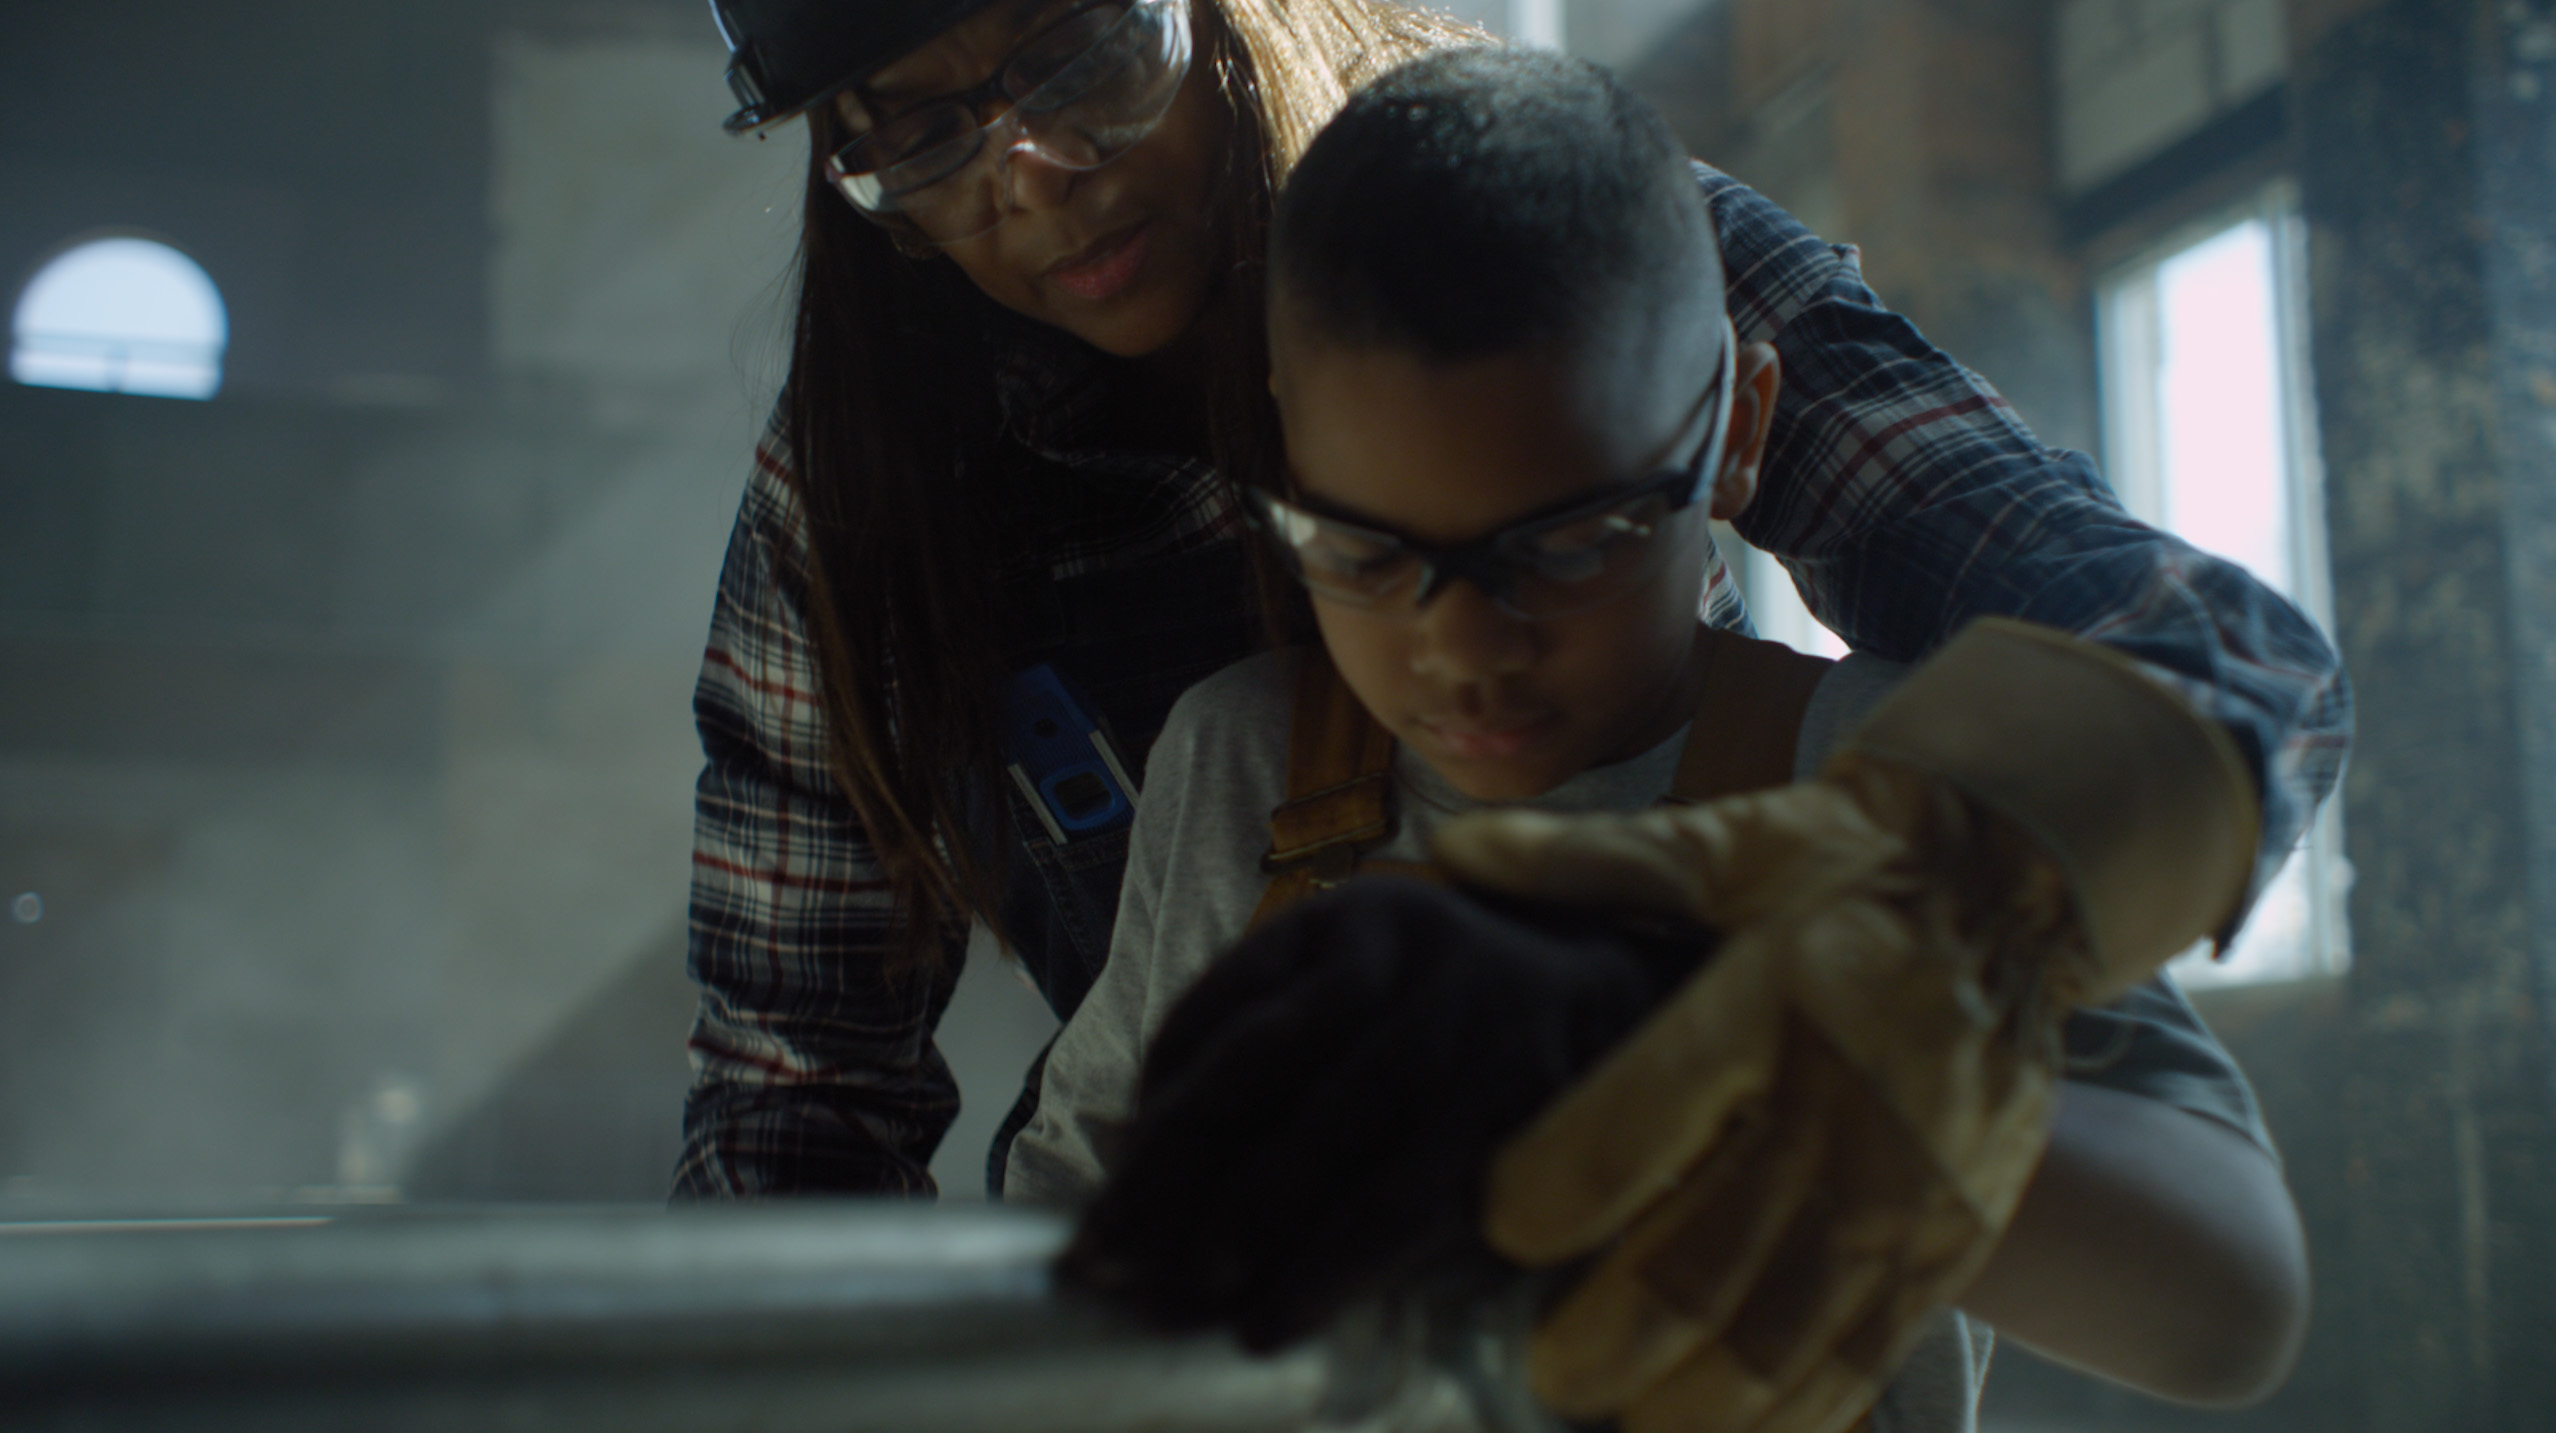 Carhartt's fall campaign celebrates hardworking people who live a Carhartt Way of Life.